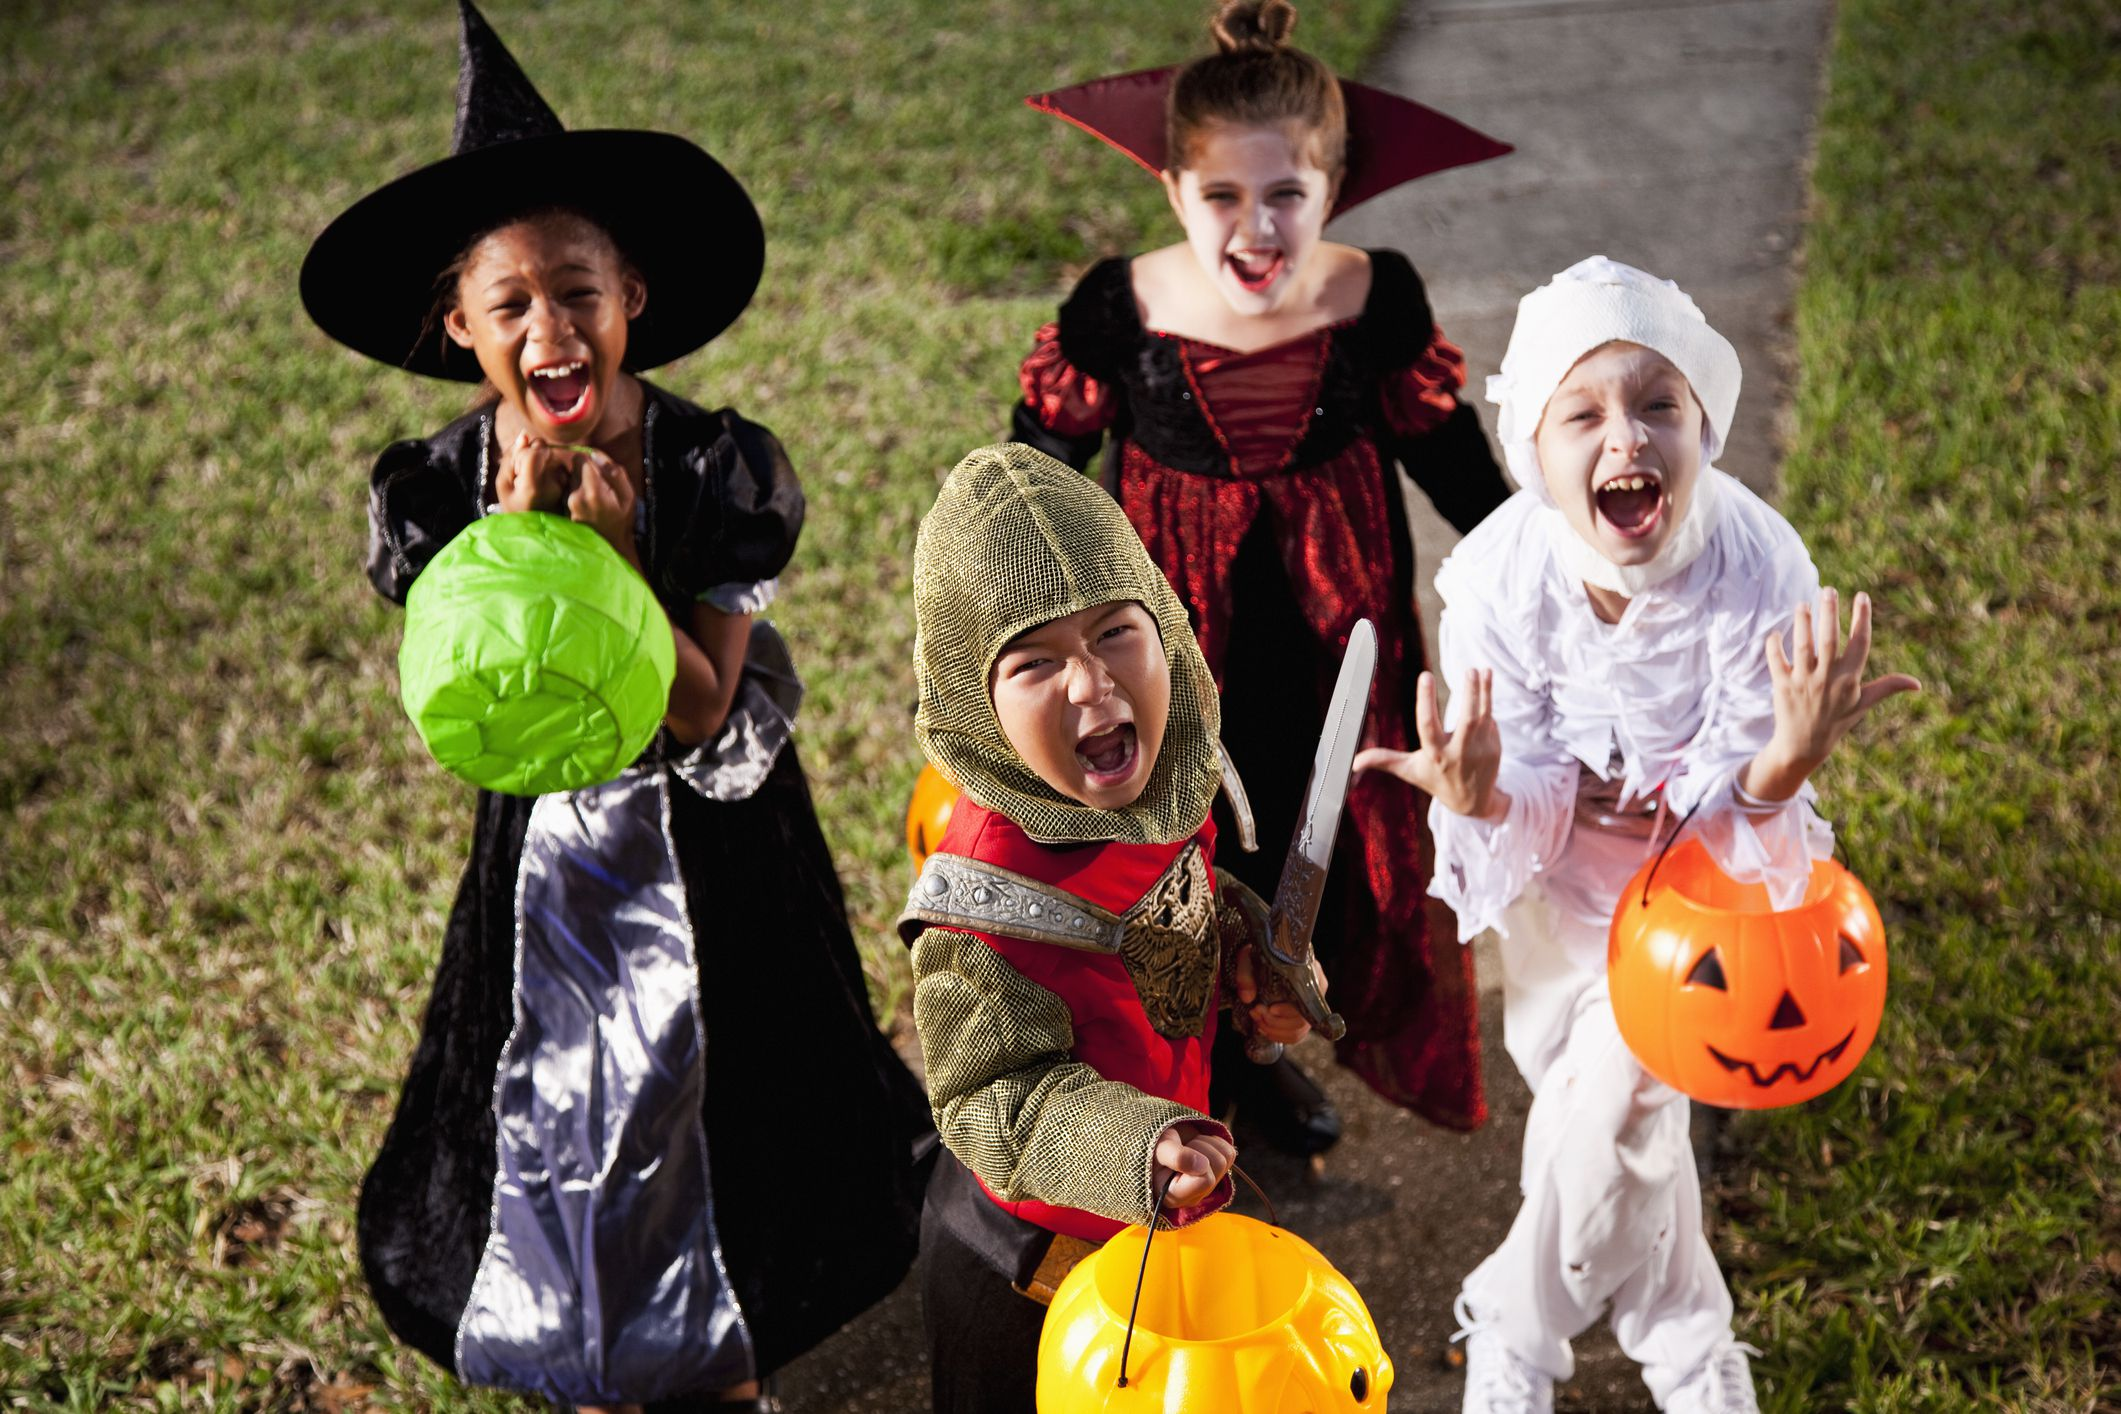 5 Trick-or-Treating Rules for Kids & Tweens